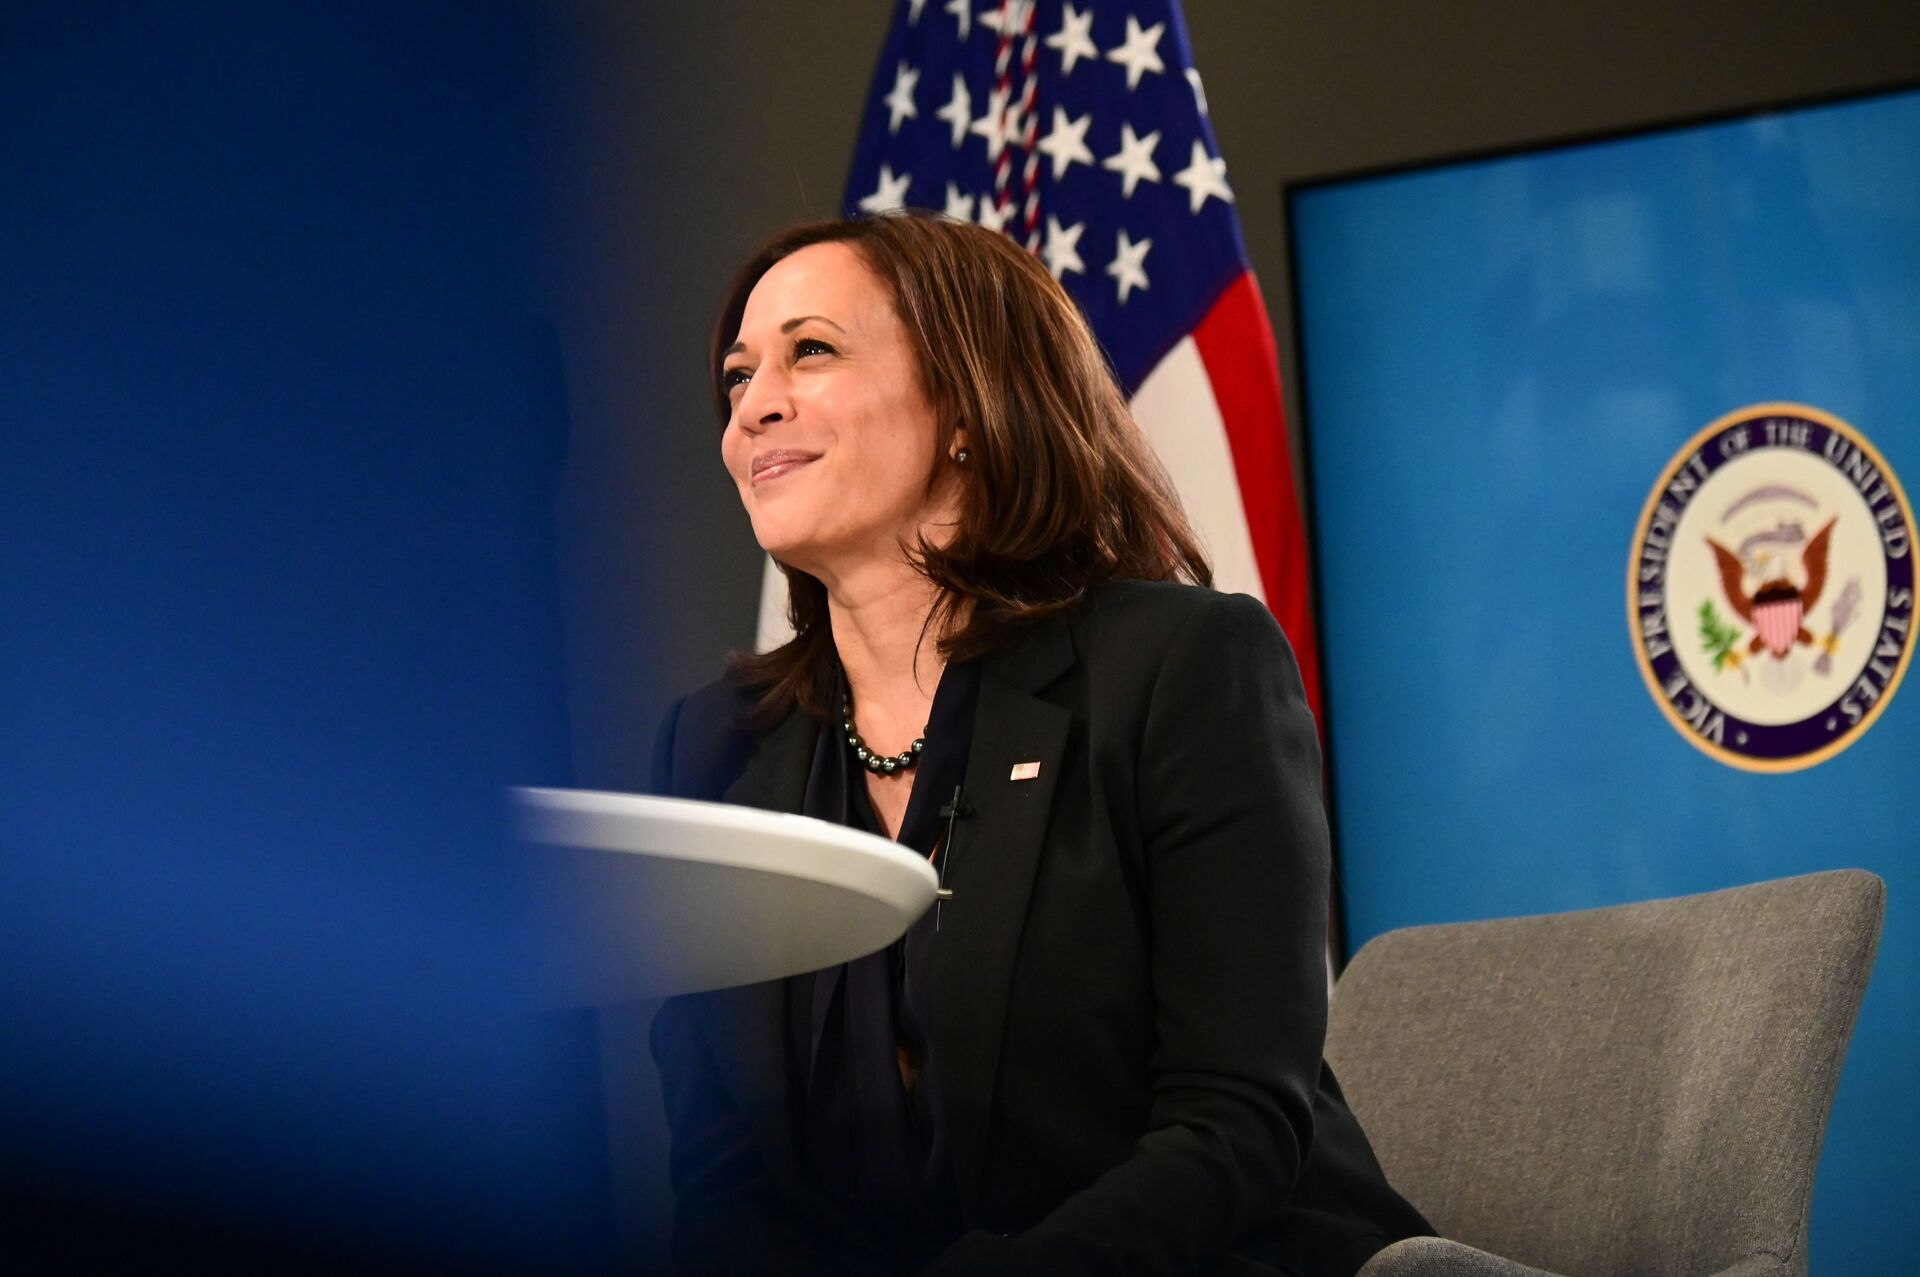 US Vice President Kamala Harris participates in a virtual meeting to discuss the newly-signed American Rescue Plan, COVID-19 relief legislation, at the White House in Washington, US, March 11, 2021 - Sputnik International, 1920, 07.09.2021